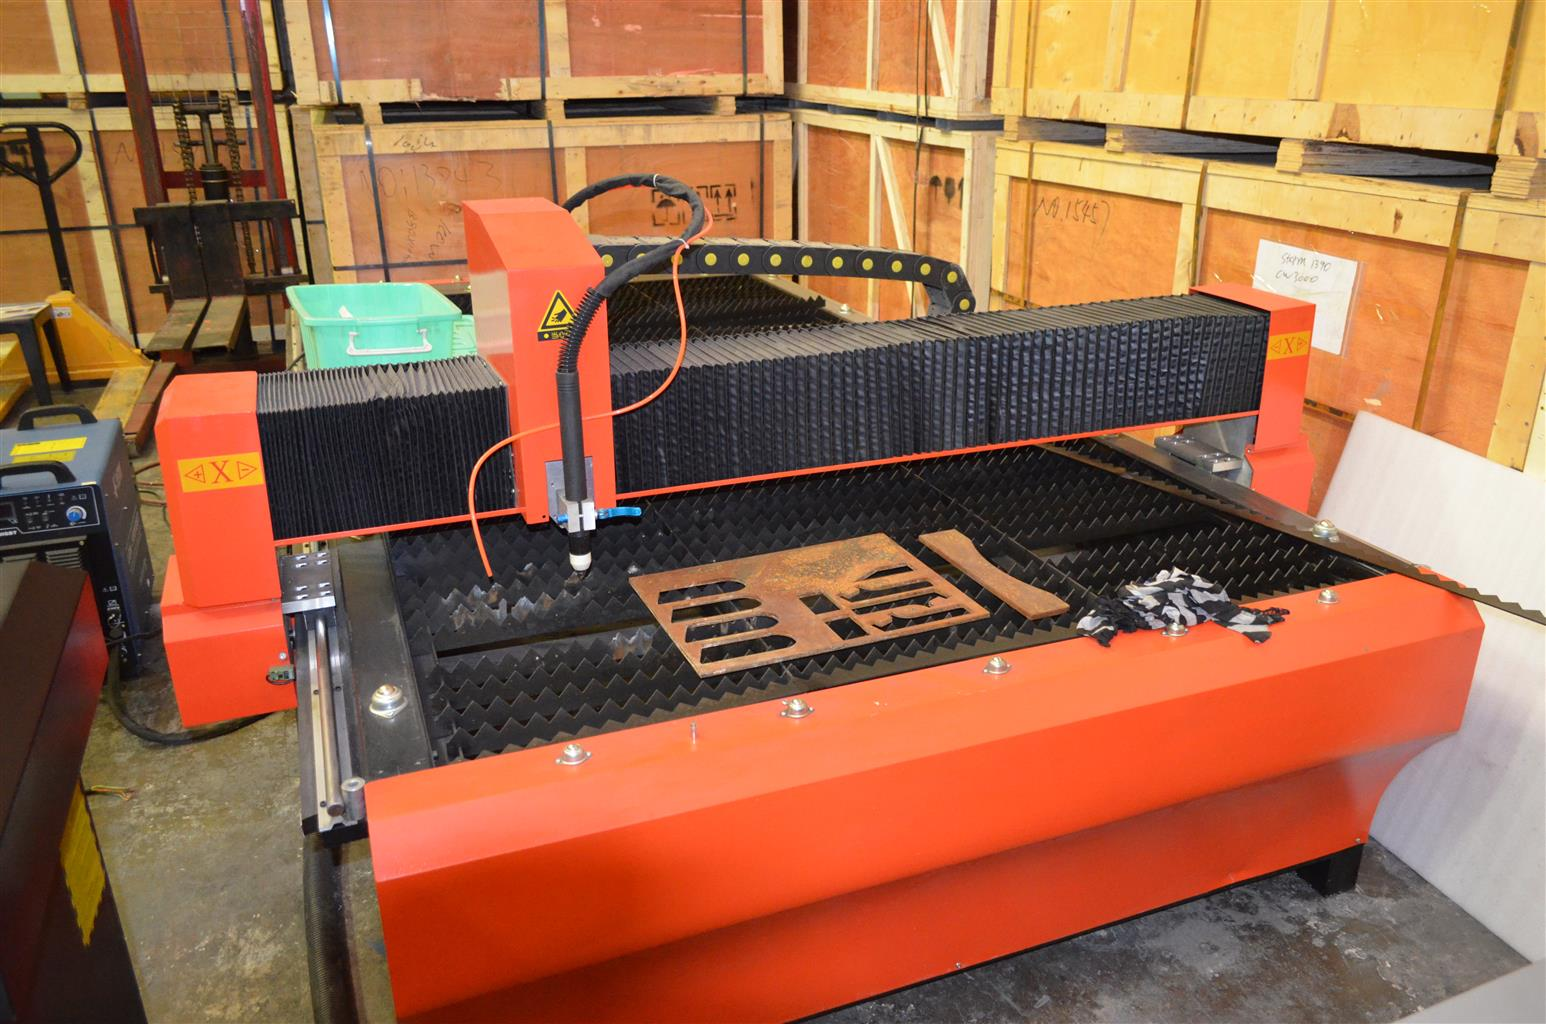 C N C Laser cutters, Plasma cutters and Routers